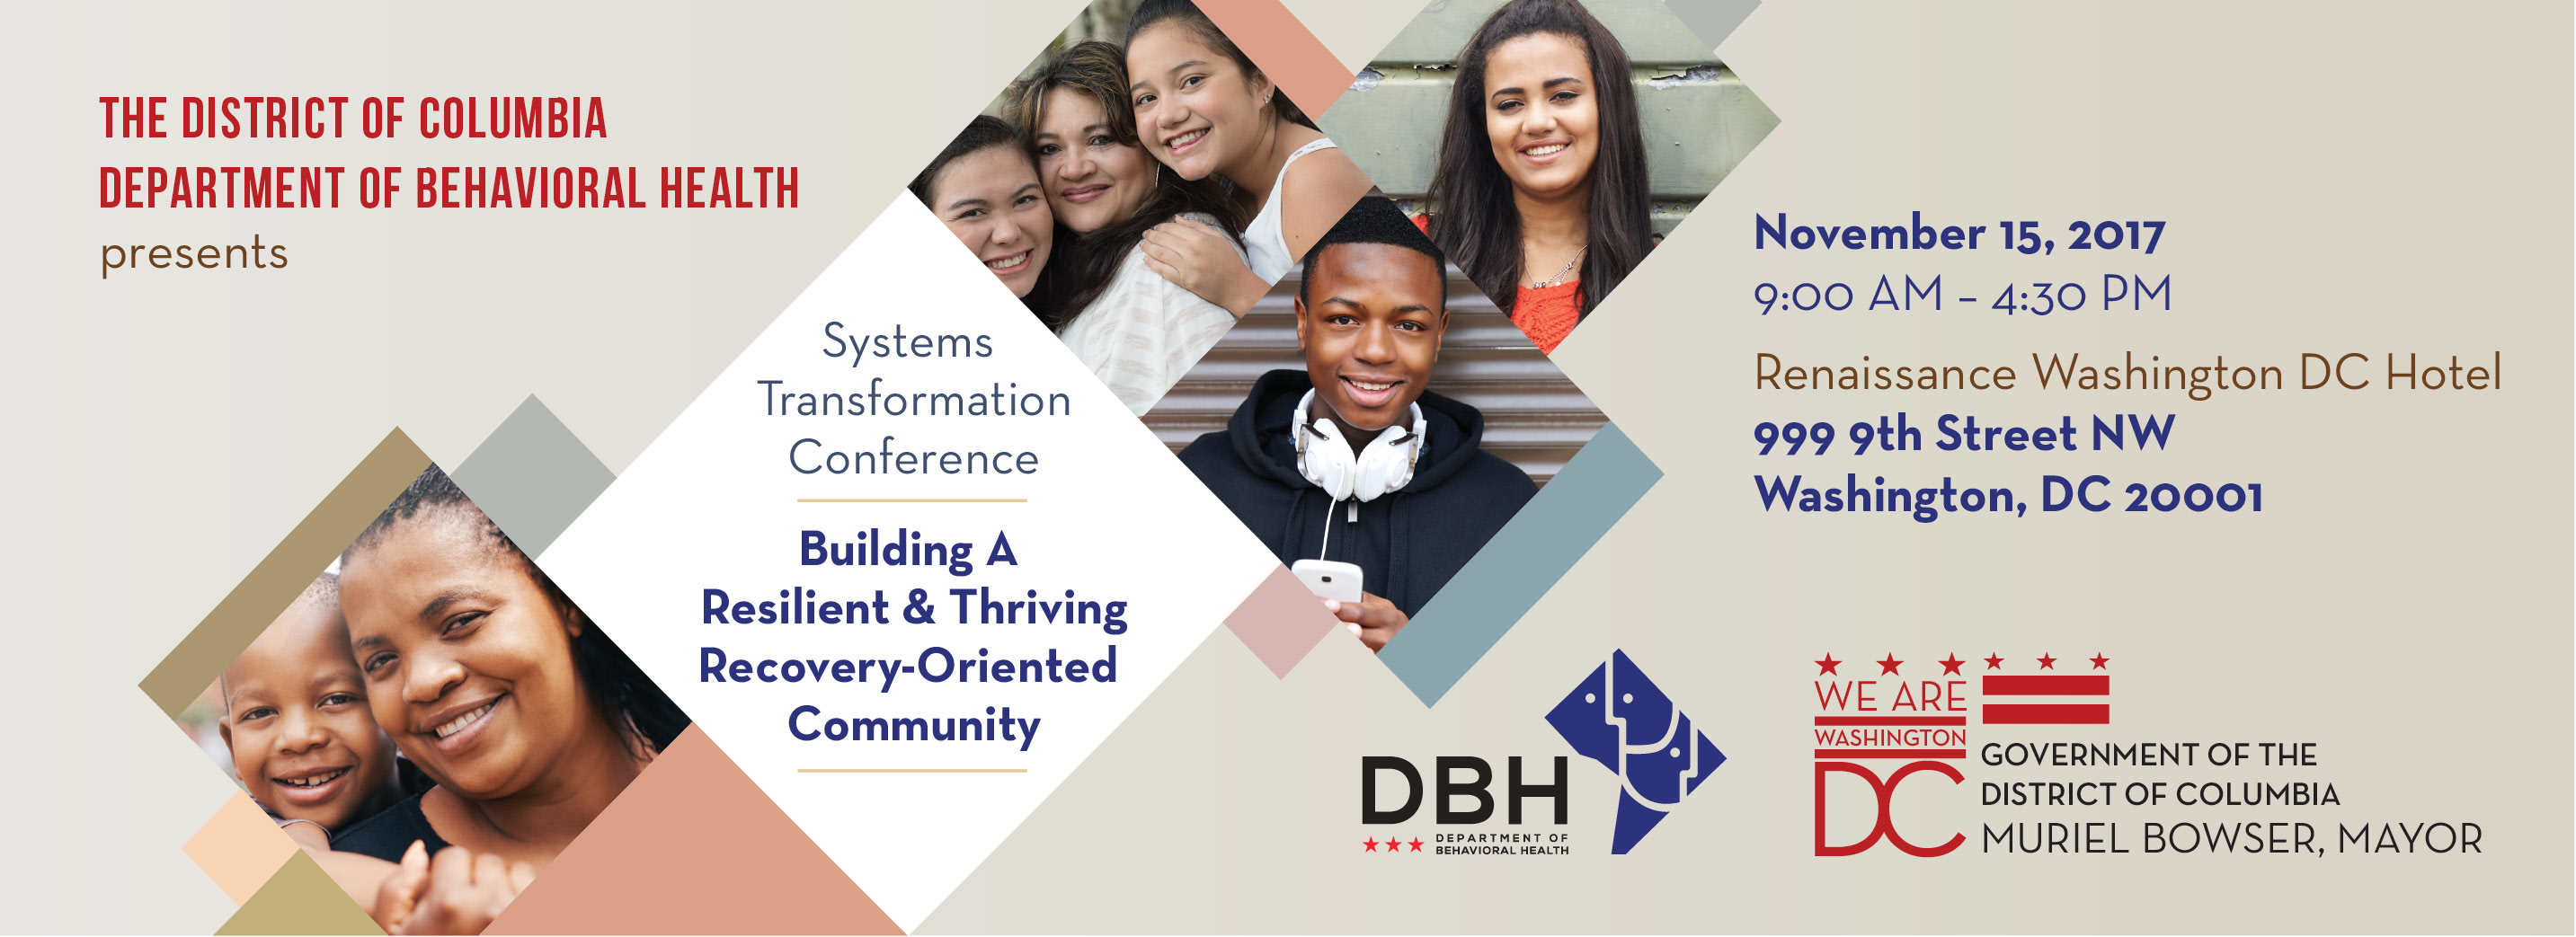 The Department of Behavioral Health provides prevention, intervention and treatment services and supports for children, youth and adults with mental and/or substance use disorders including emergency psychiatric care and community-based outpatient and residential services.